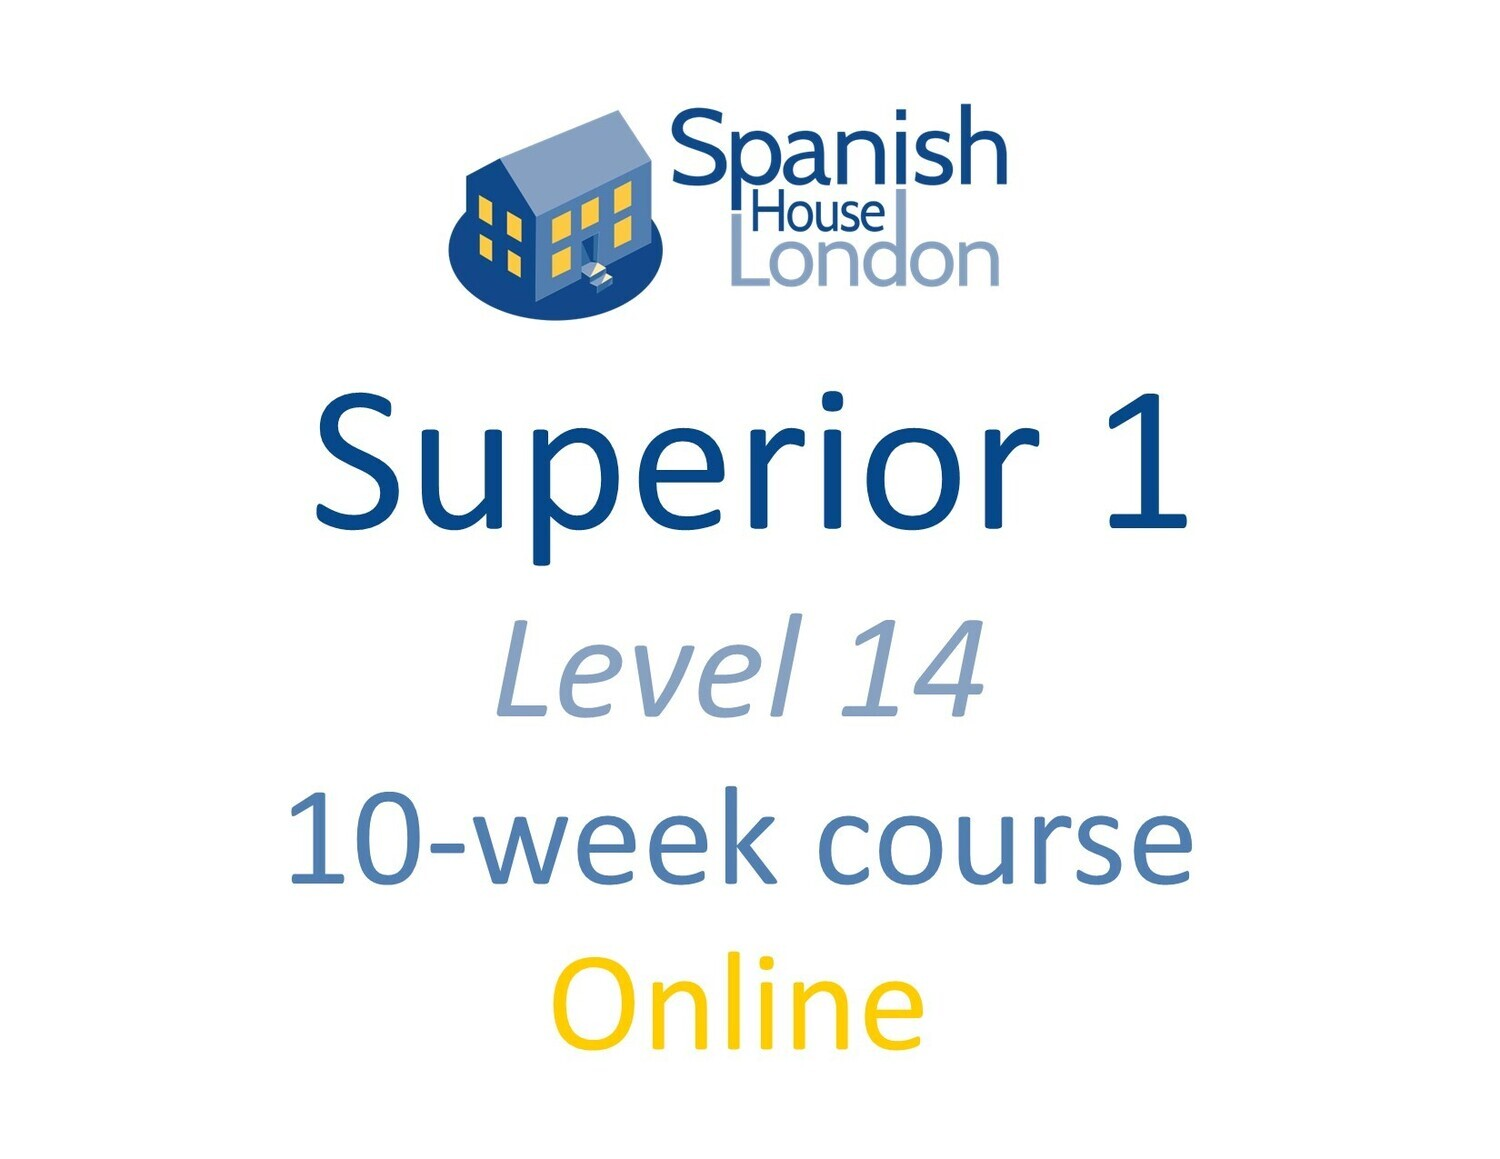 Superior 1 Course starting on 8th November at 6pm